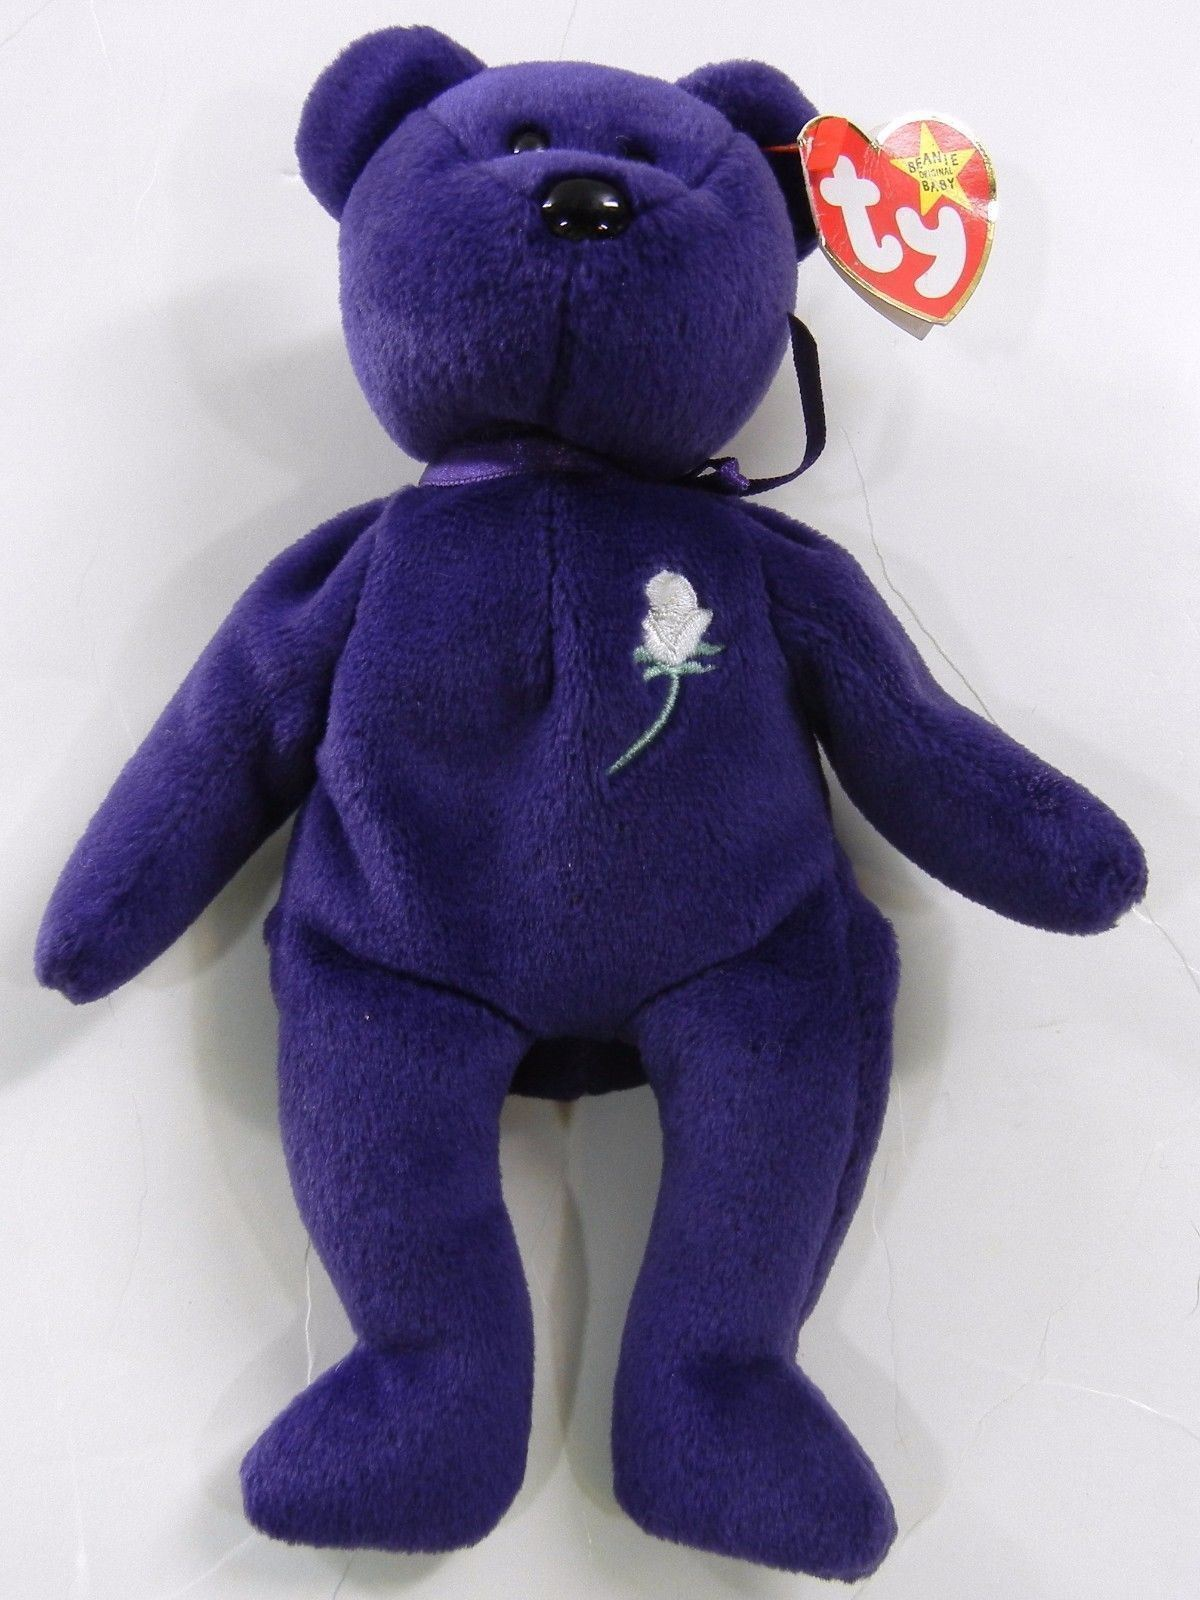 75e14e9a711 TY BEANIE BABY Princess Diana Purple Plush and 50 similar items